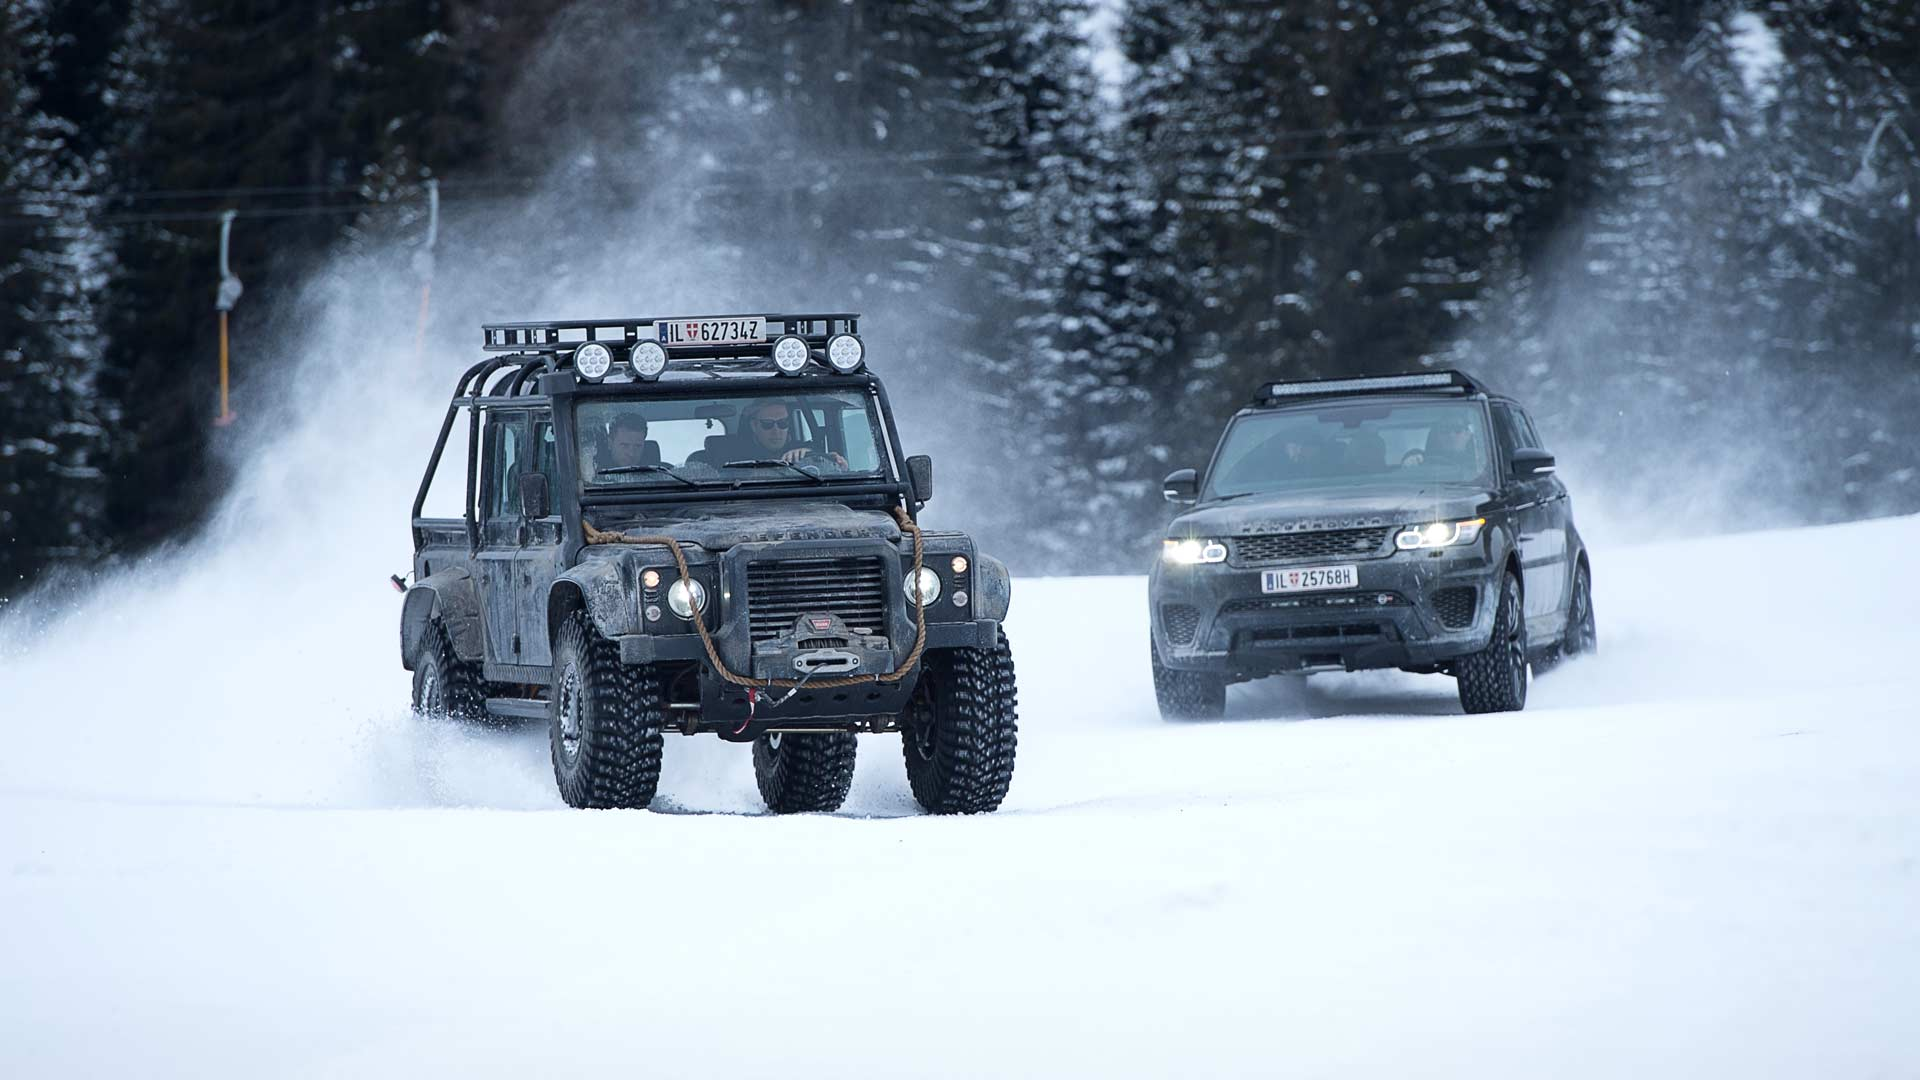 007-Elements-Solden-Land-Rover-Defender-Range-Rover-Sport-SVR